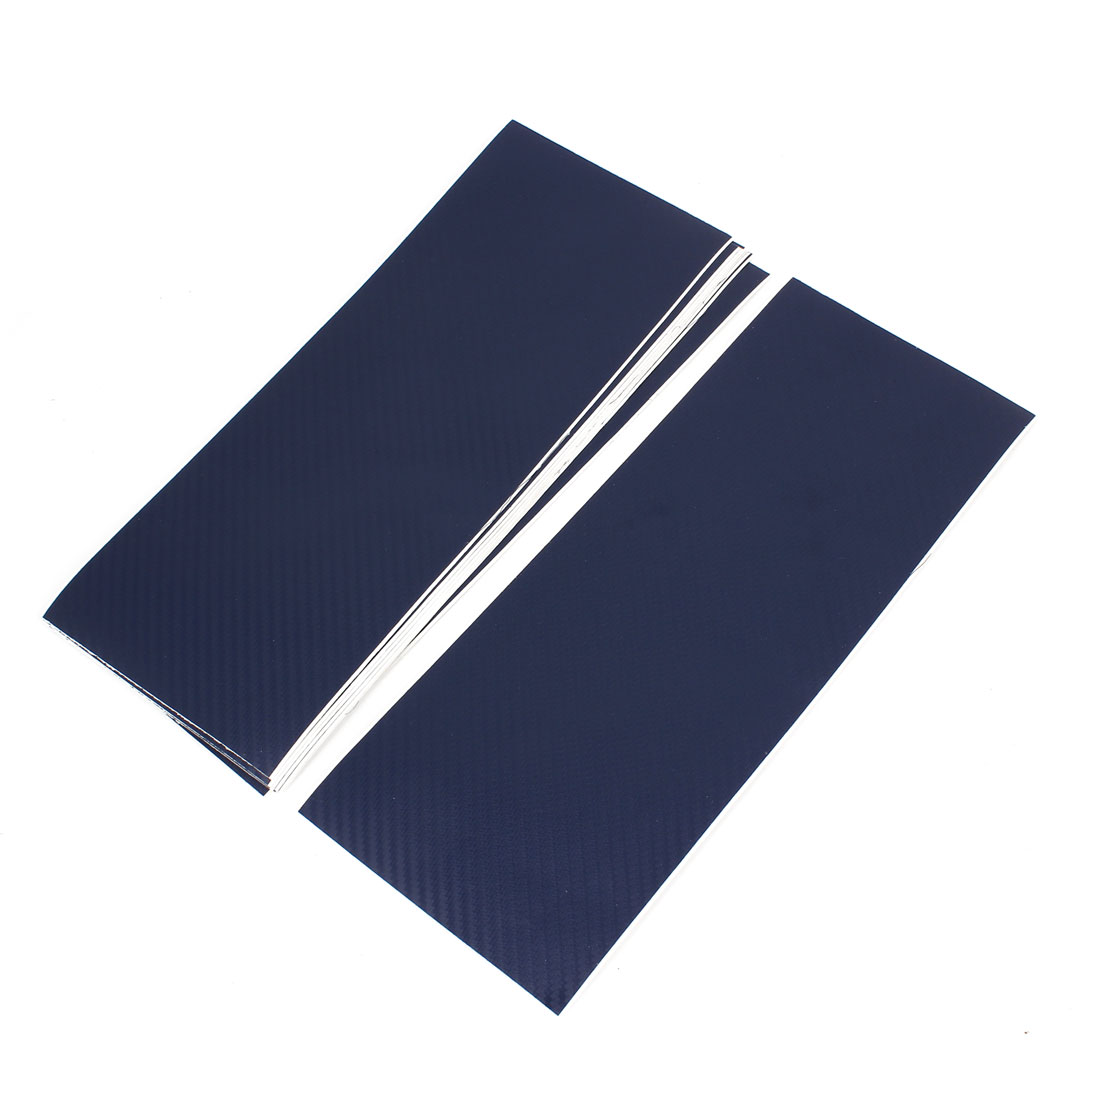 10pcs 300 x 115mm Adhesive Back Carbon Fiber Print Protective Vinyl Film Sticker Dark Blue for Car